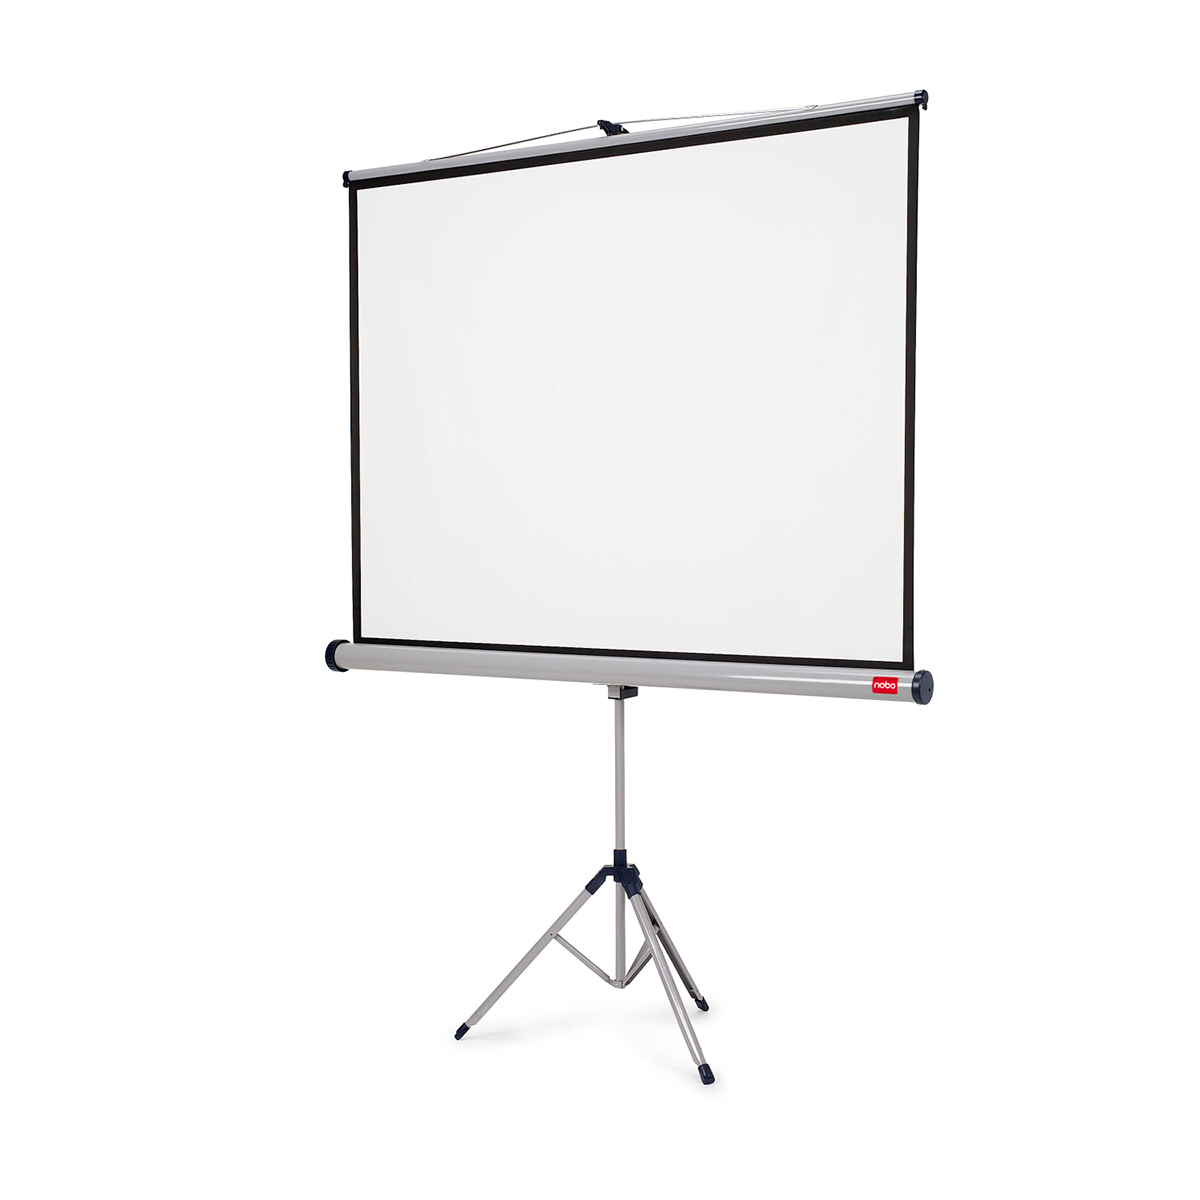 Nobo 1902395W 1500 x 1000mm Tripod Mounted Projection Screen